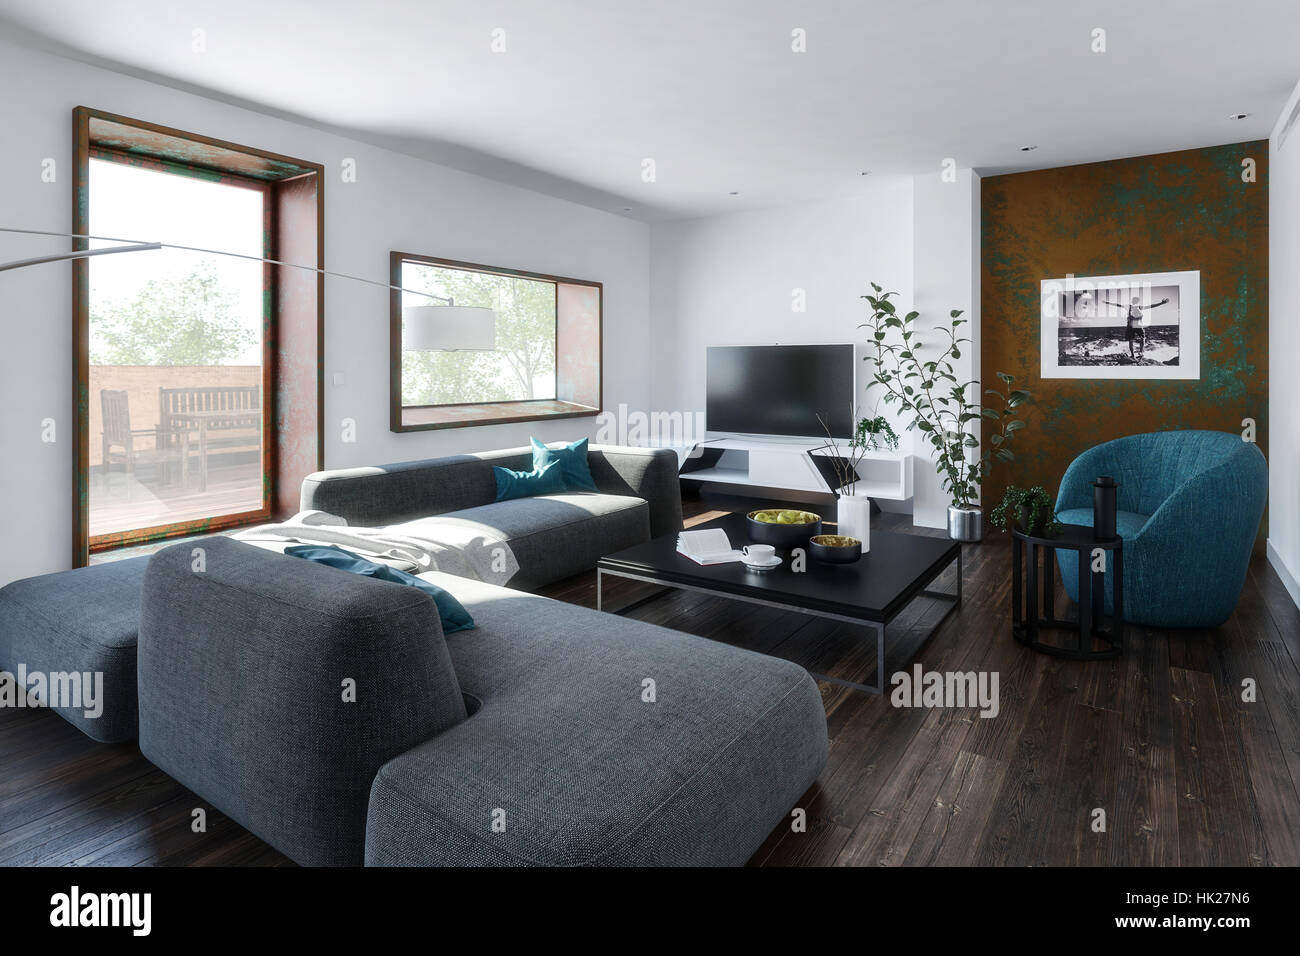 living room modular furniture. 3D Render Scene Of Large Living Room With Square Table And Modular Sofa Chair Furniture